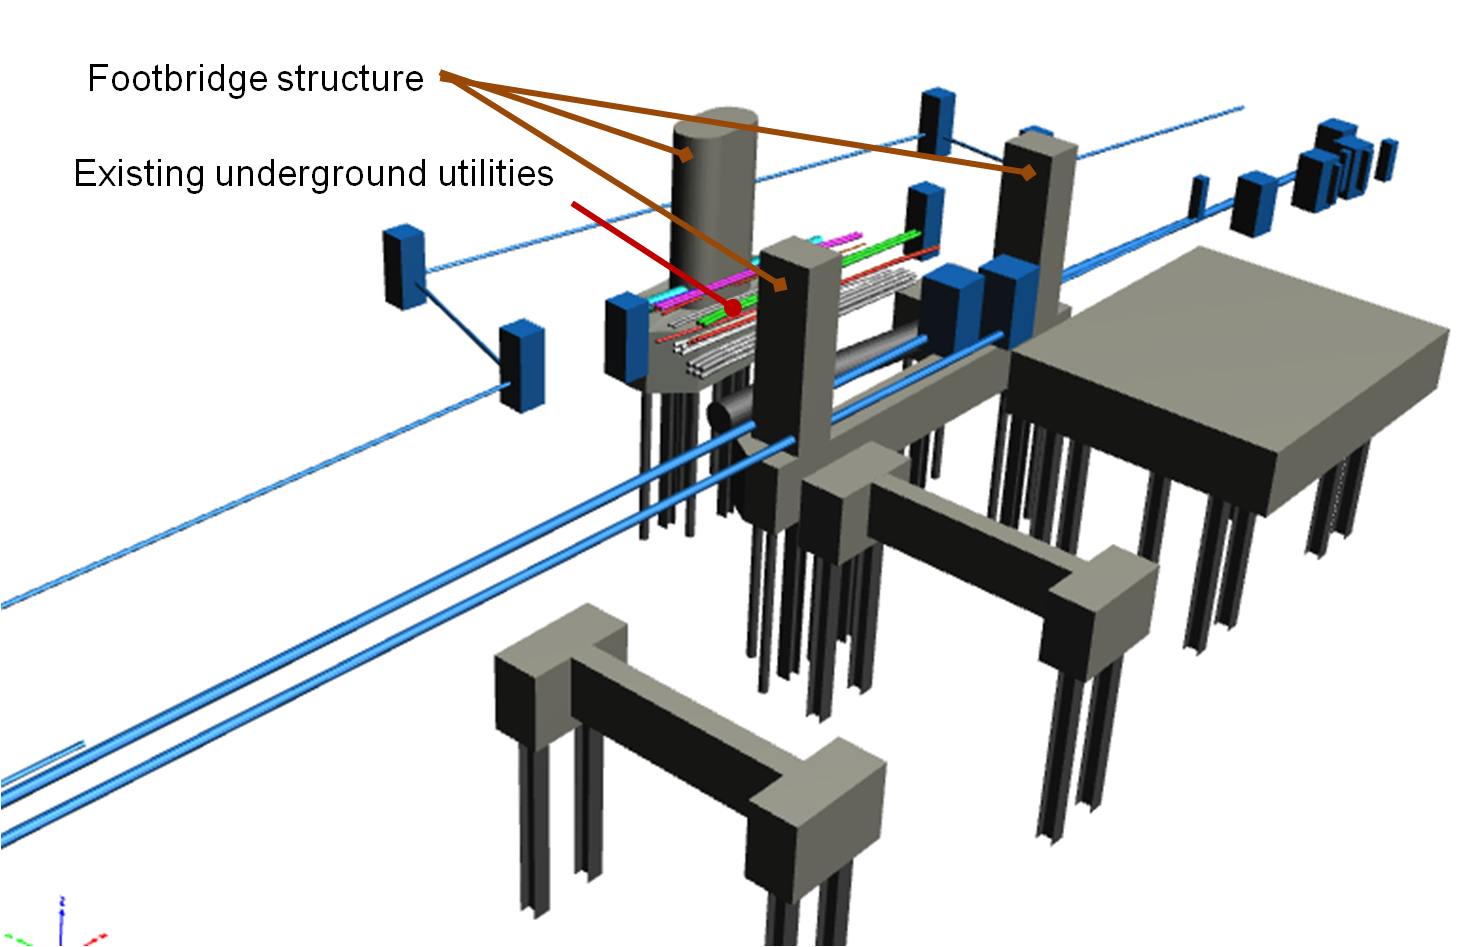 BIM - Underground - check footbridge structure vs UU